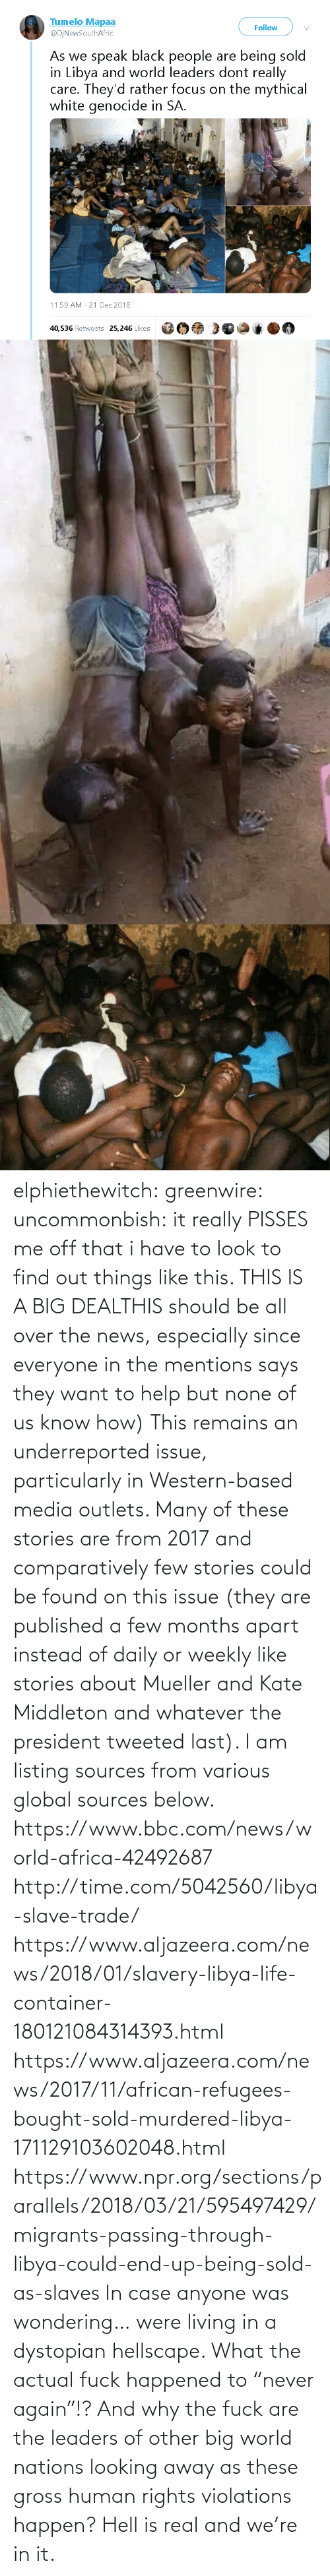 "human: elphiethewitch: greenwire:  uncommonbish:  it really PISSES me off that i have to look to find out things like this. THIS IS A BIG DEALTHIS should be all over the news, especially since everyone in the mentions says they want to help but none of us know how)  This remains an underreported issue, particularly in Western-based media outlets. Many of these stories are from 2017 and comparatively few stories could be found on this issue (they are published a few months apart instead of daily or weekly like stories about Mueller and Kate Middleton and whatever the president tweeted last). I am listing sources from various global sources below.  https://www.bbc.com/news/world-africa-42492687 http://time.com/5042560/libya-slave-trade/ https://www.aljazeera.com/news/2018/01/slavery-libya-life-container-180121084314393.html https://www.aljazeera.com/news/2017/11/african-refugees-bought-sold-murdered-libya-171129103602048.html https://www.npr.org/sections/parallels/2018/03/21/595497429/migrants-passing-through-libya-could-end-up-being-sold-as-slaves   In case anyone was wondering… were living in a dystopian hellscape.  What the actual fuck happened to ""never again""!? And why the fuck are the leaders of other big world nations looking away as these gross human rights violations happen?  Hell is real and we're in it."